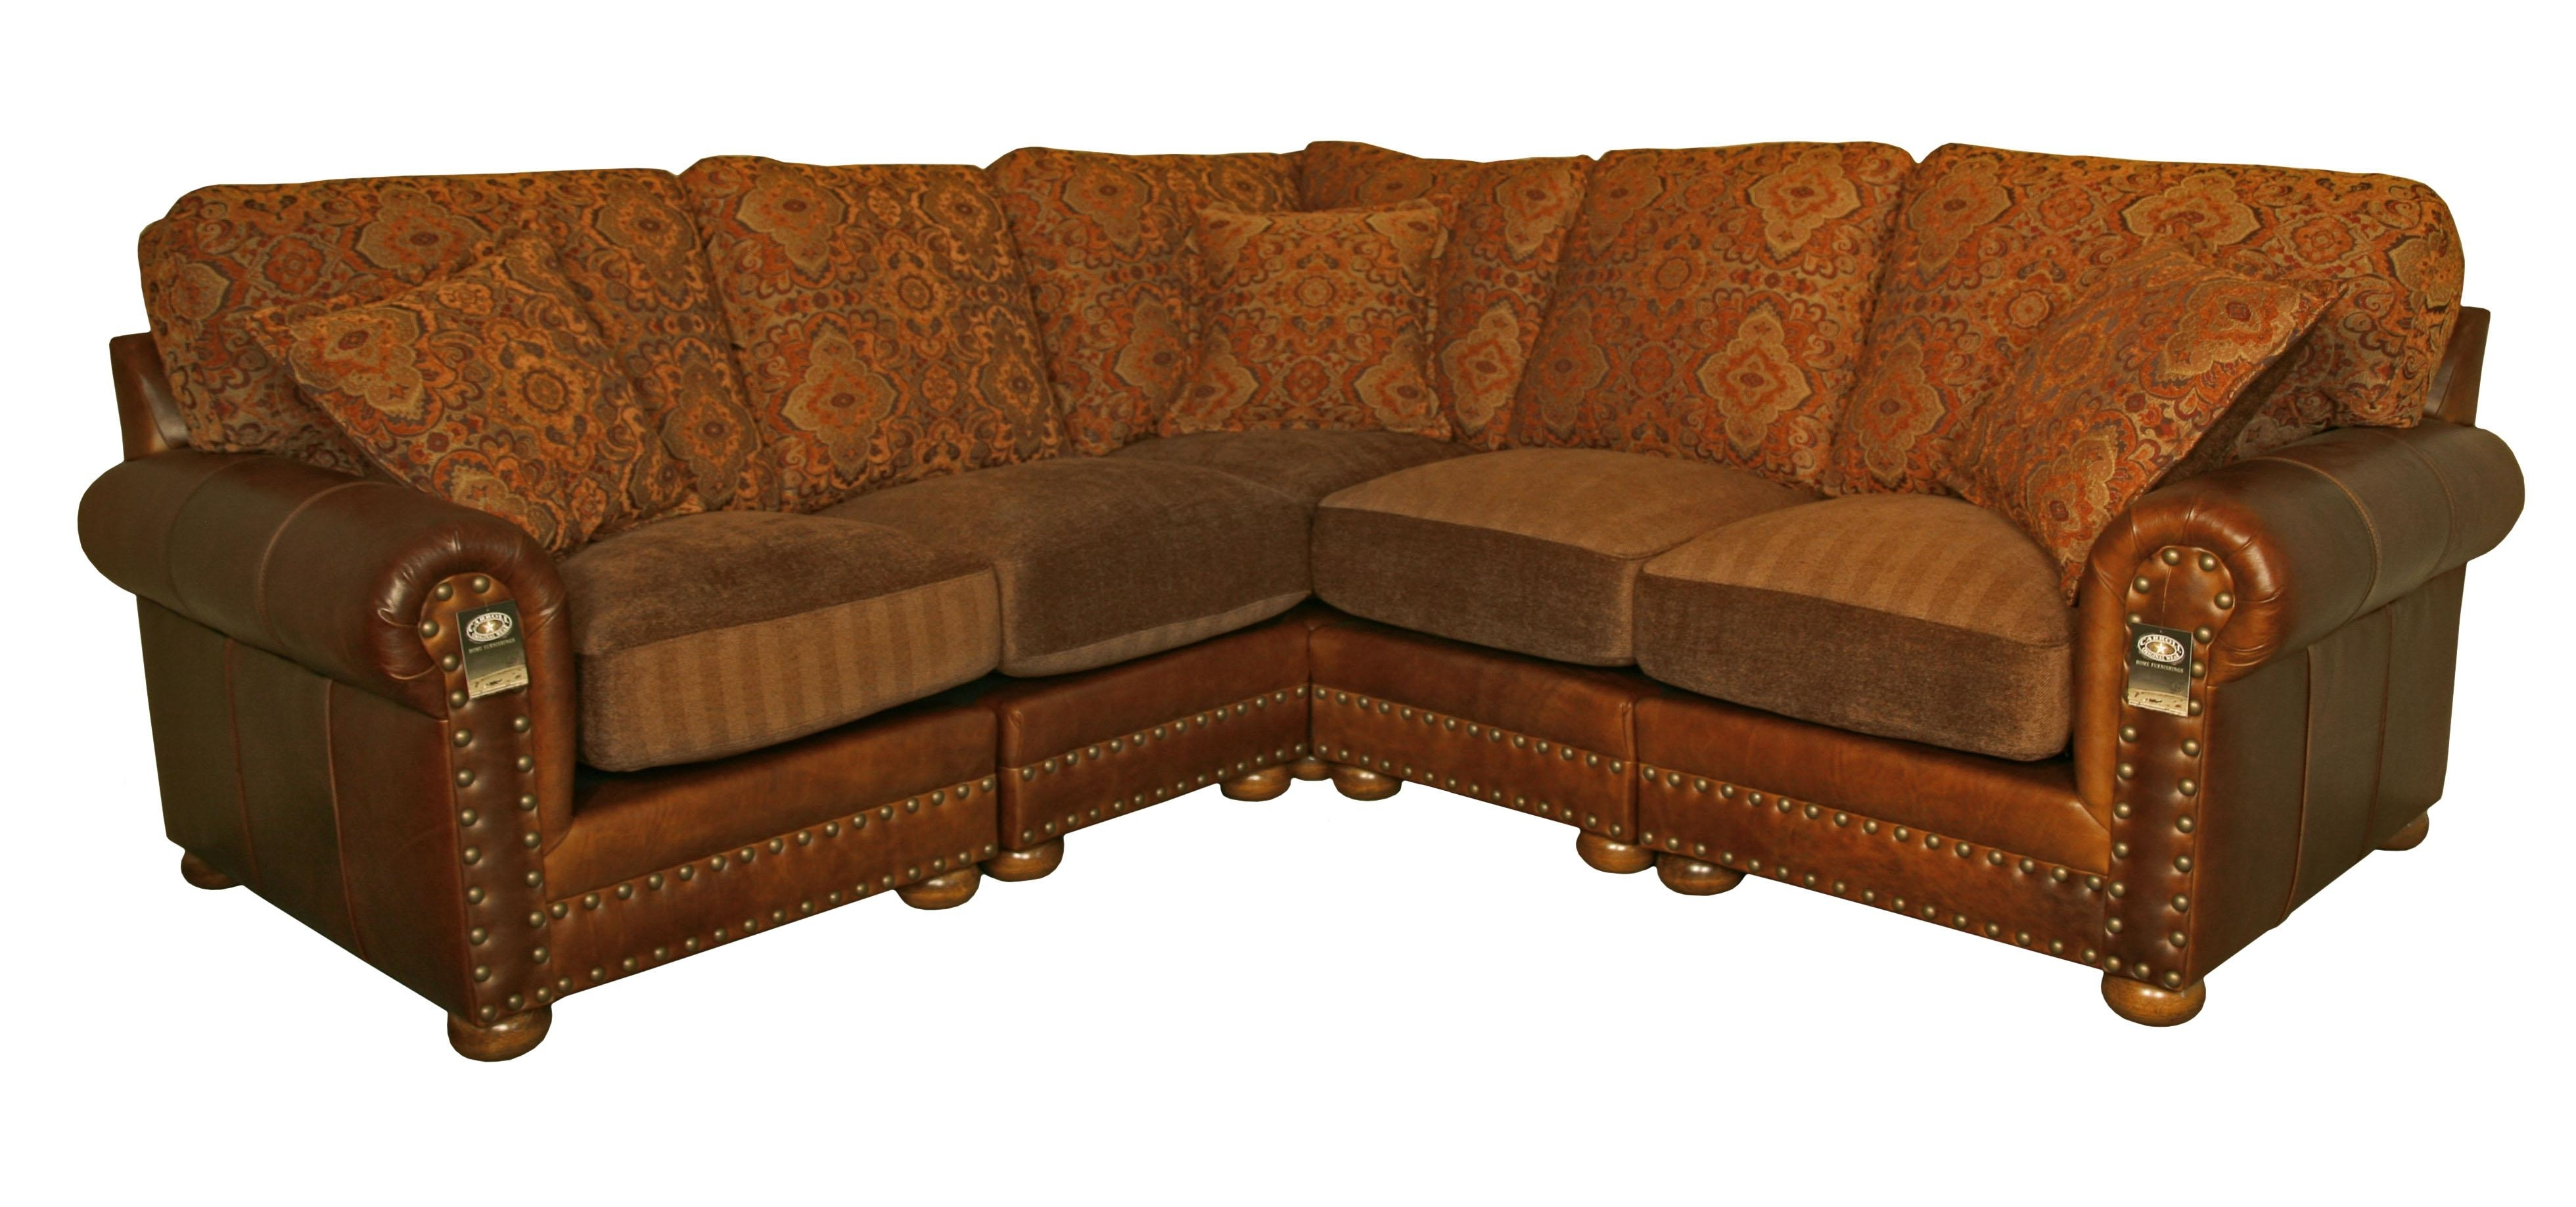 Leather And Cloth Sectional Sofas – Radiovannes With Leather And Cloth Sofas (View 9 of 10)